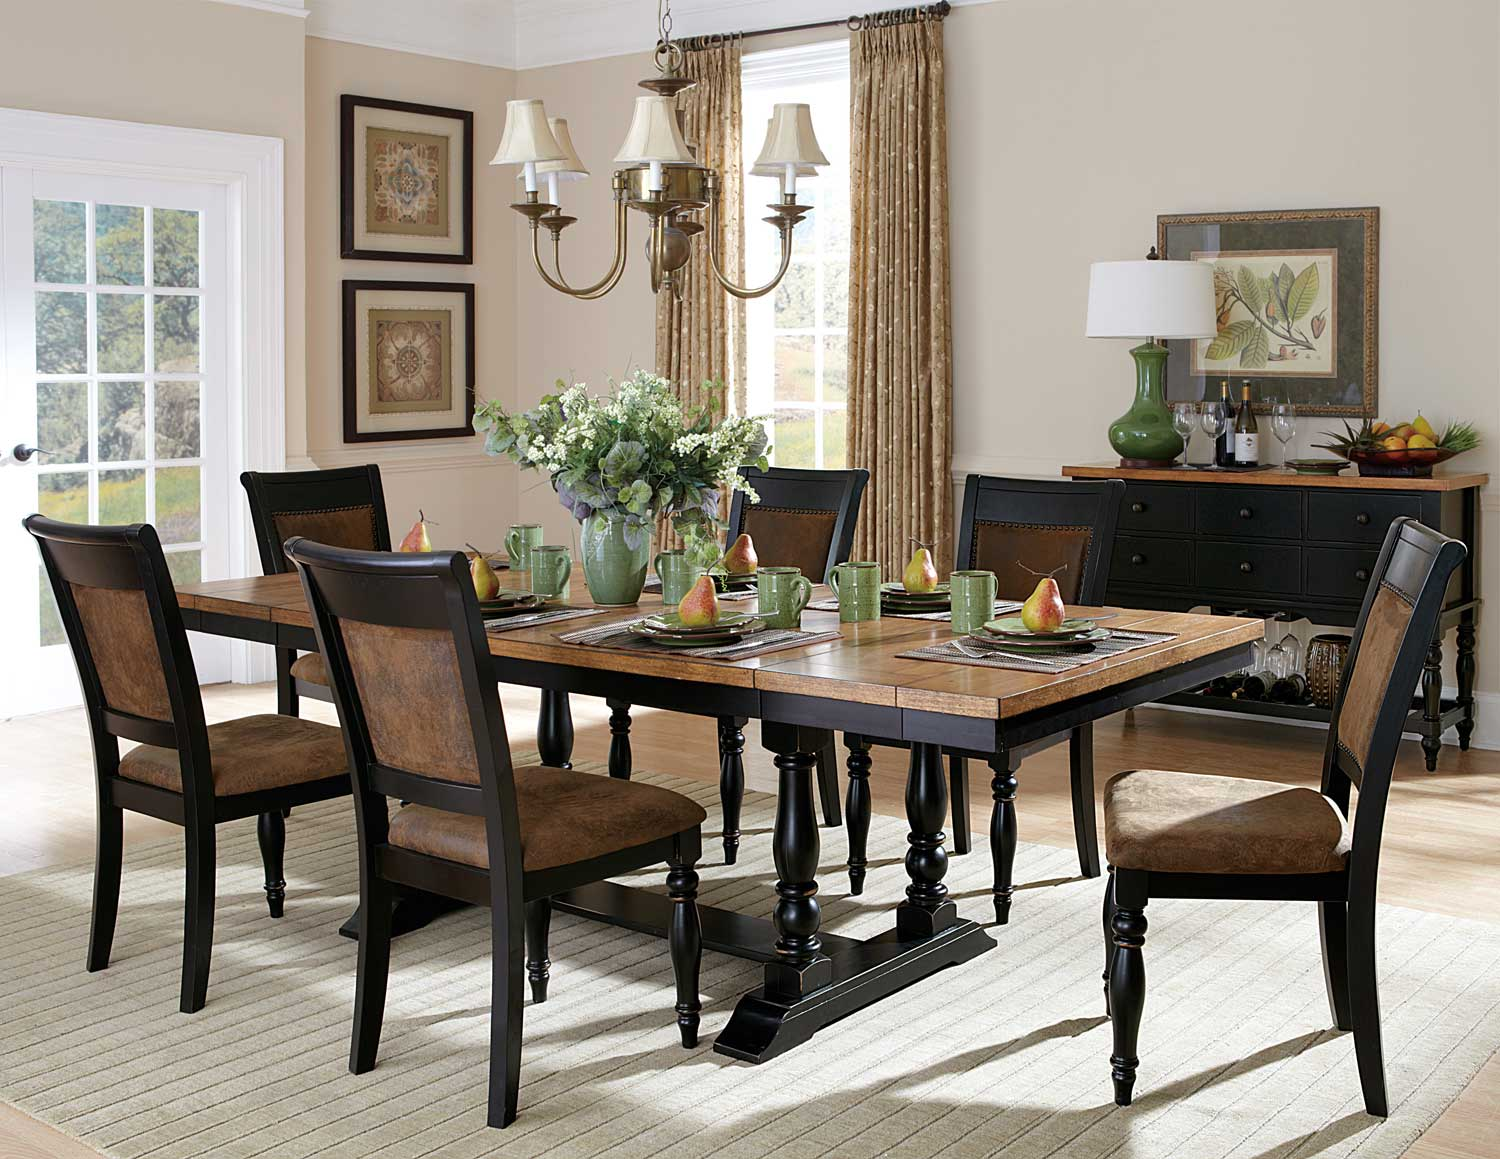 Distressed dining room sets